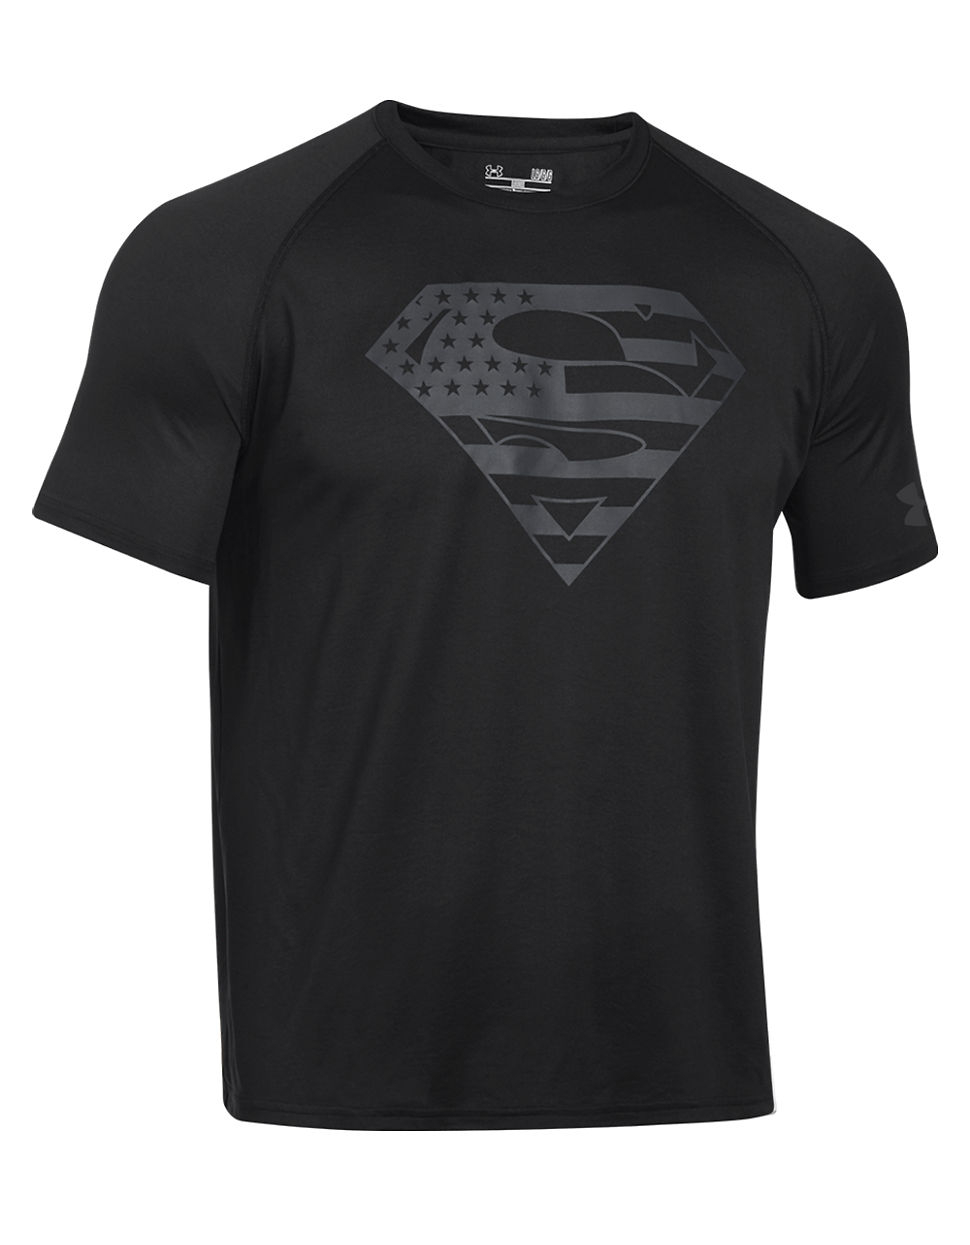 Under armour alter ego usa superman tee in black for men for Under armour swim shirt